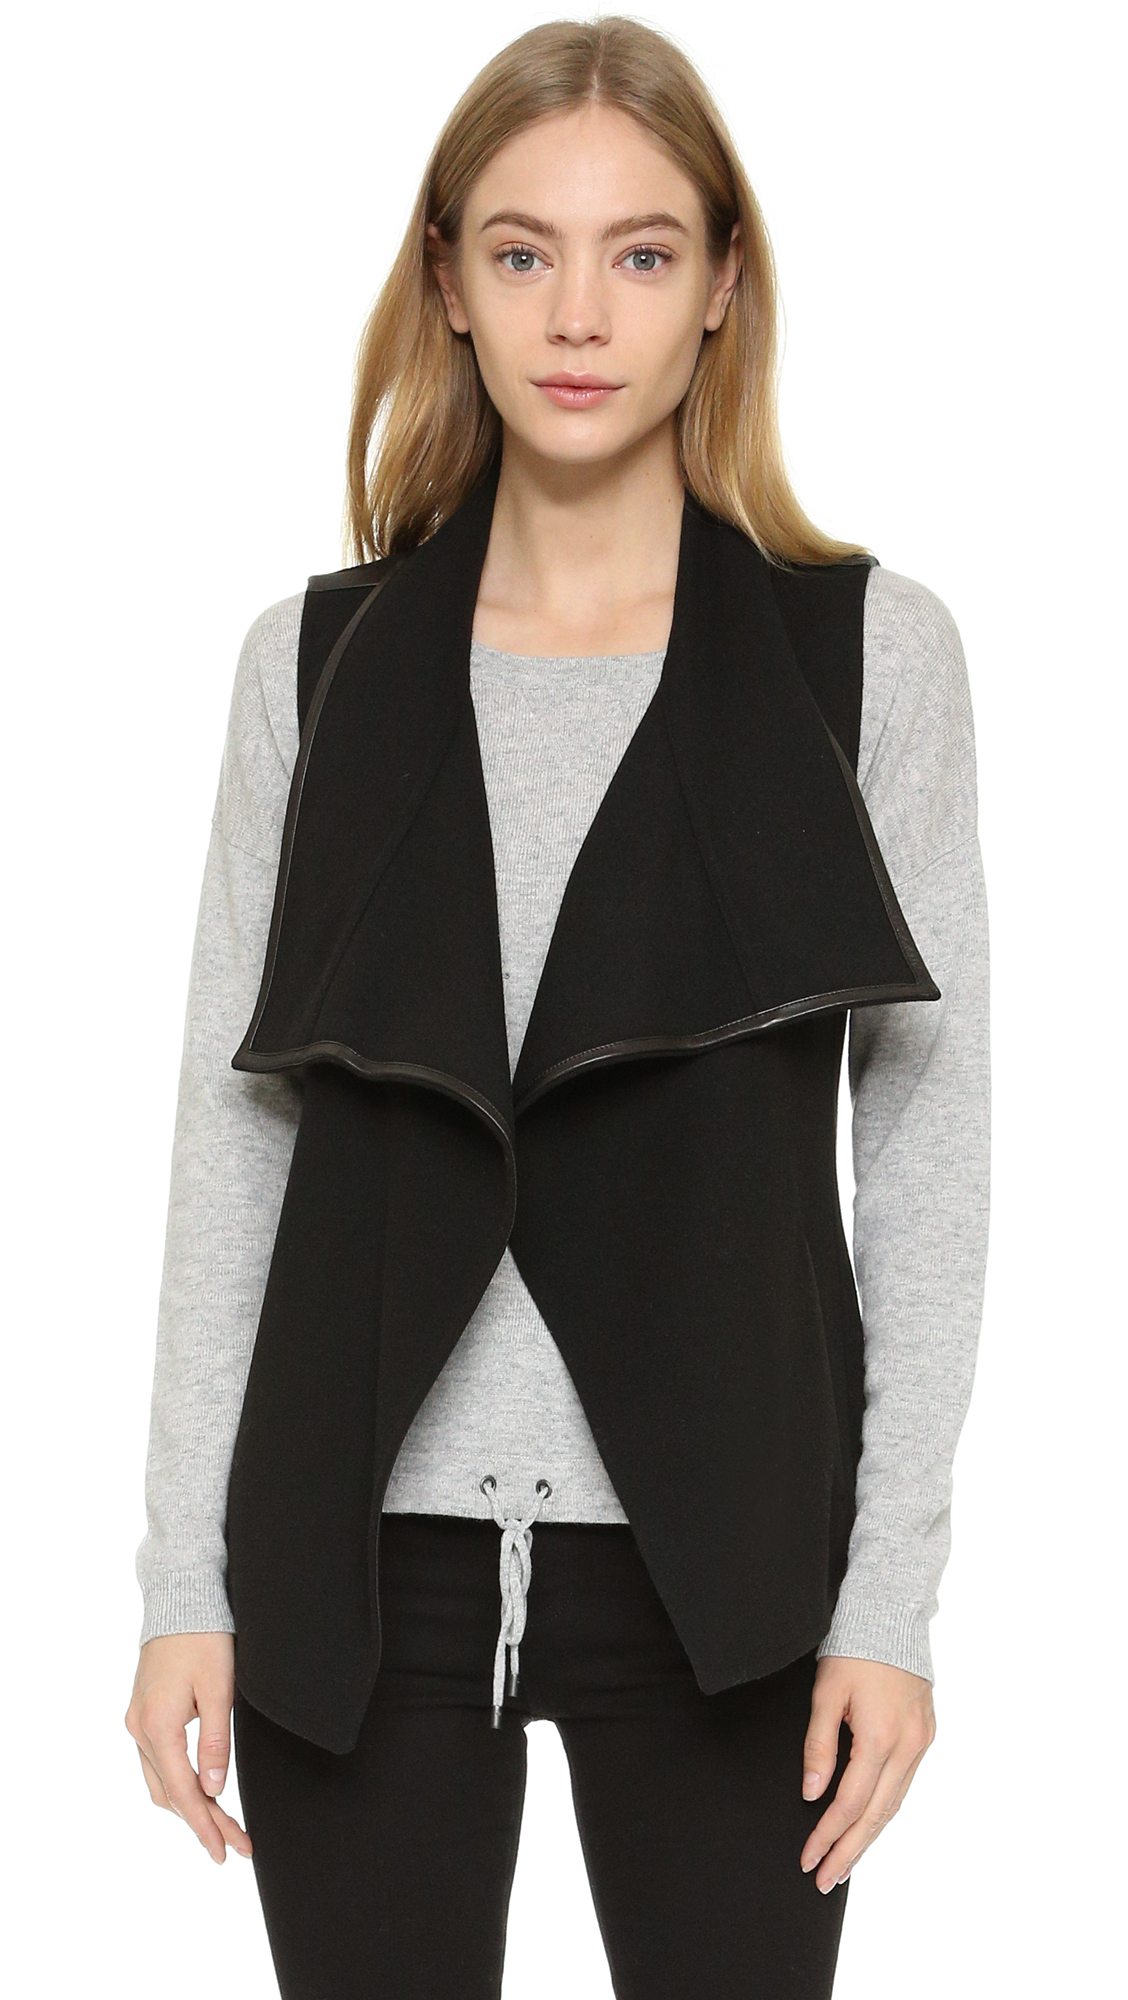 Leather VestShopbop Vince Trim Vince Trim VestShopbop Leather Trim Leather Vince tCshQrd